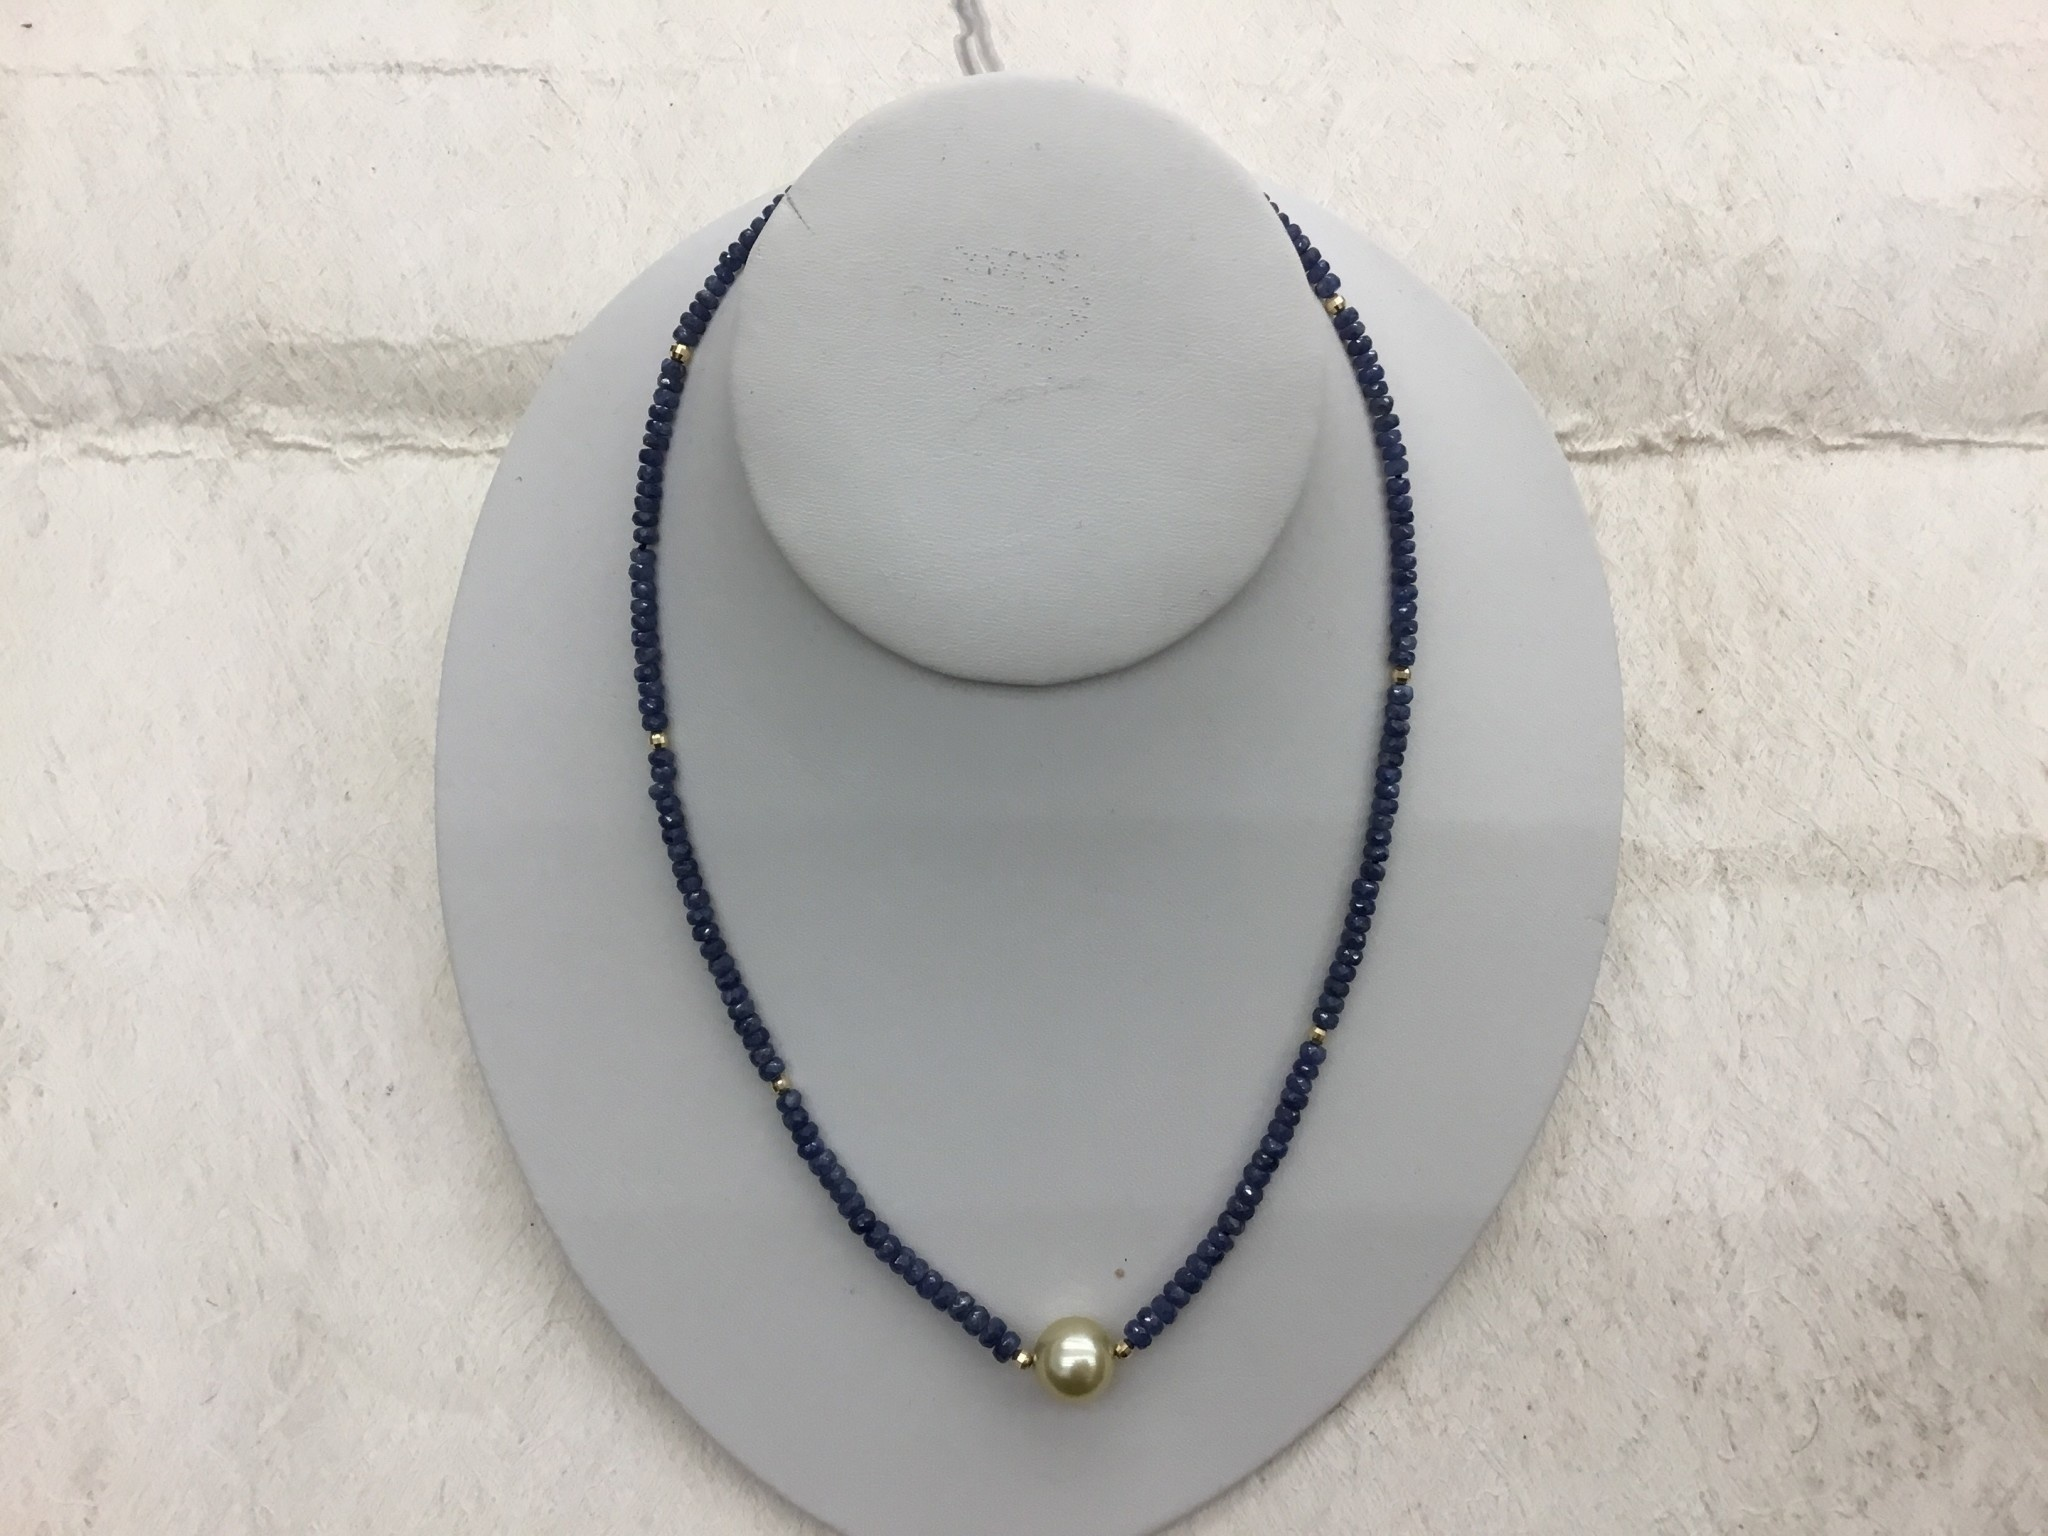 #89 SAPPHIRE NECKLACE WITH SOUTH SEA PEARL 1-11mm 14KG